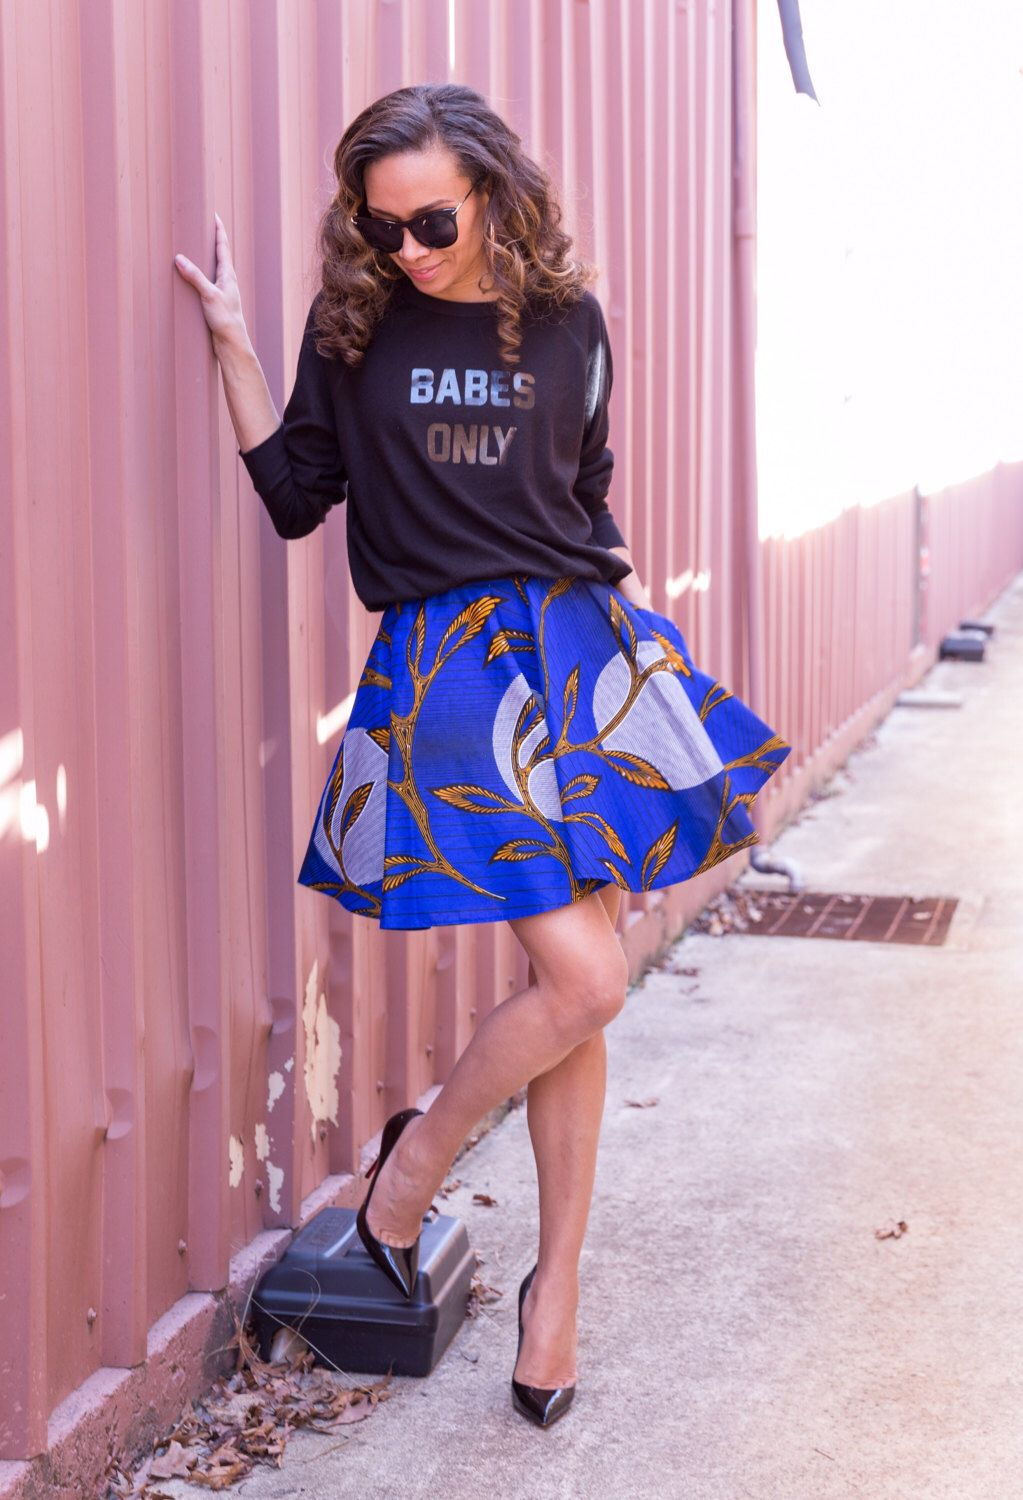 443fe3dfeb Skater Skirts are used all over the world from runway models to  thirty-something moms. let s look at some styles and how we can revamp them.